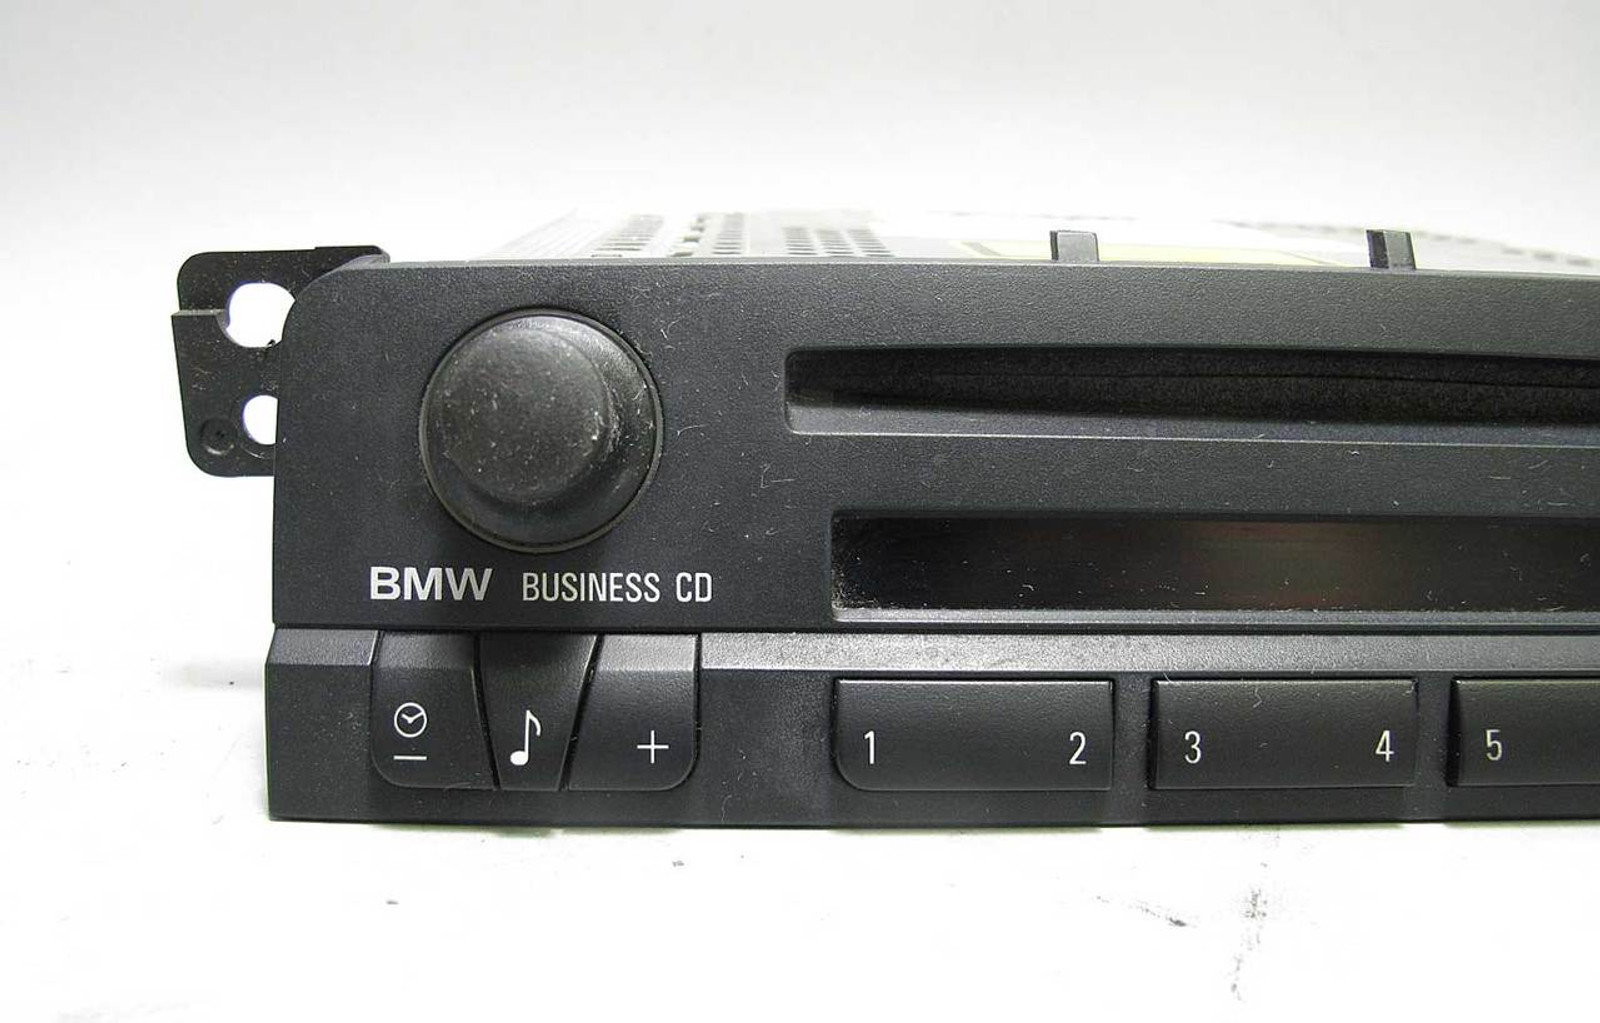 bmw e46 3 series factory business cd cd53 radio headunit. Black Bedroom Furniture Sets. Home Design Ideas